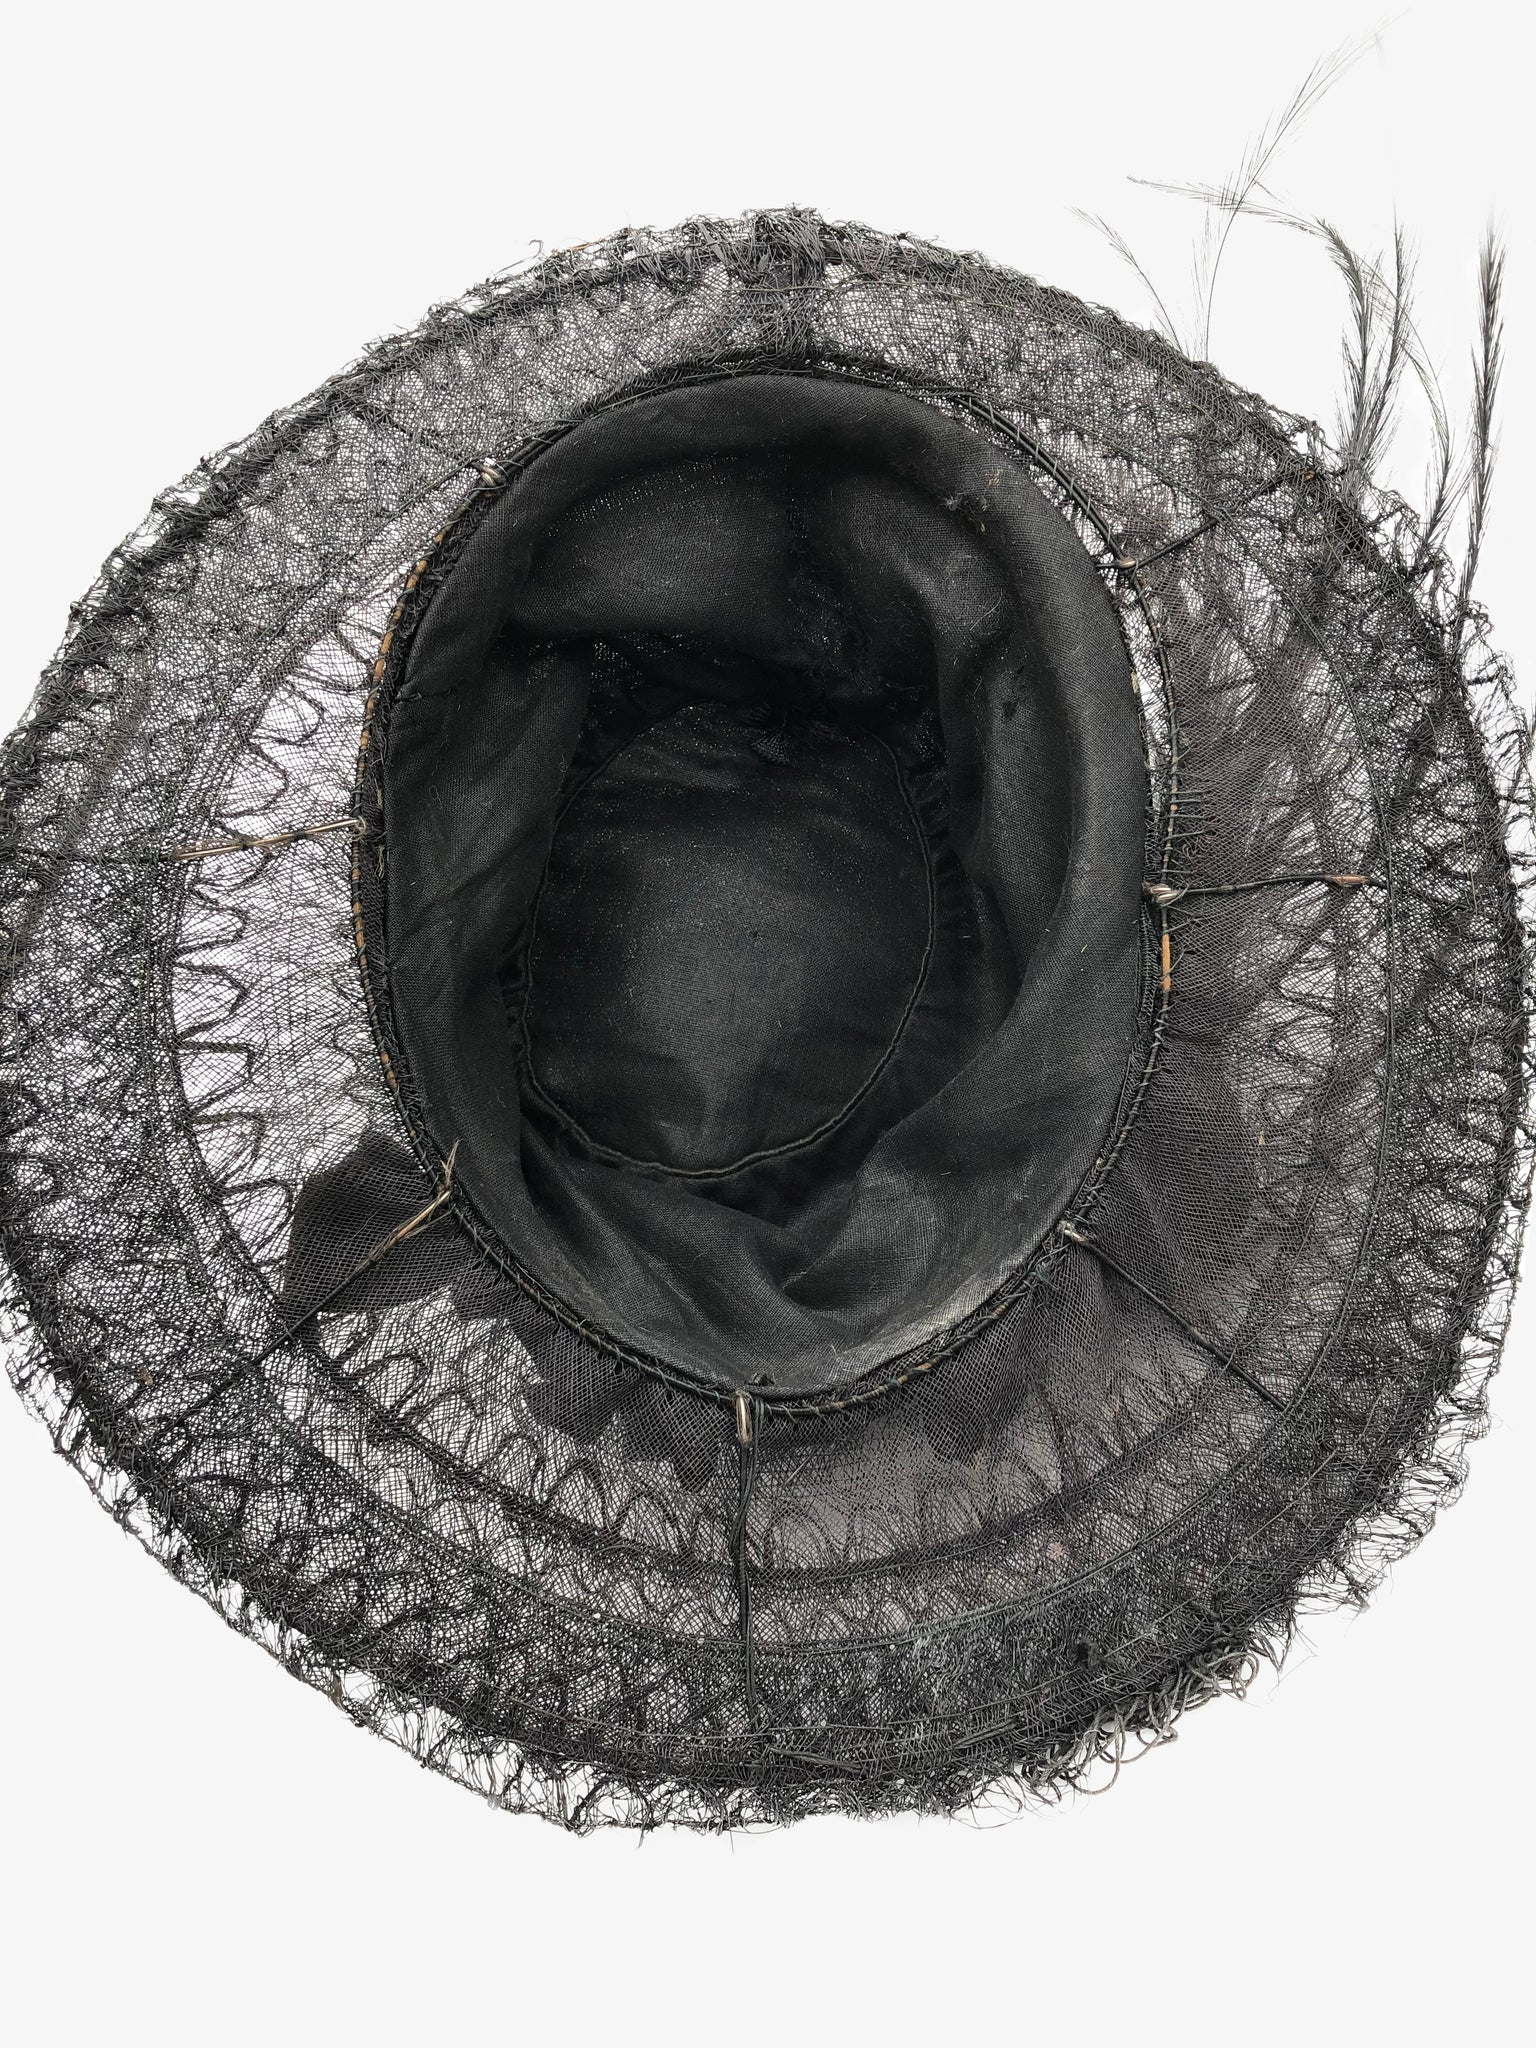 Edwardian Black Medium Brim Hat with Feathers , top view